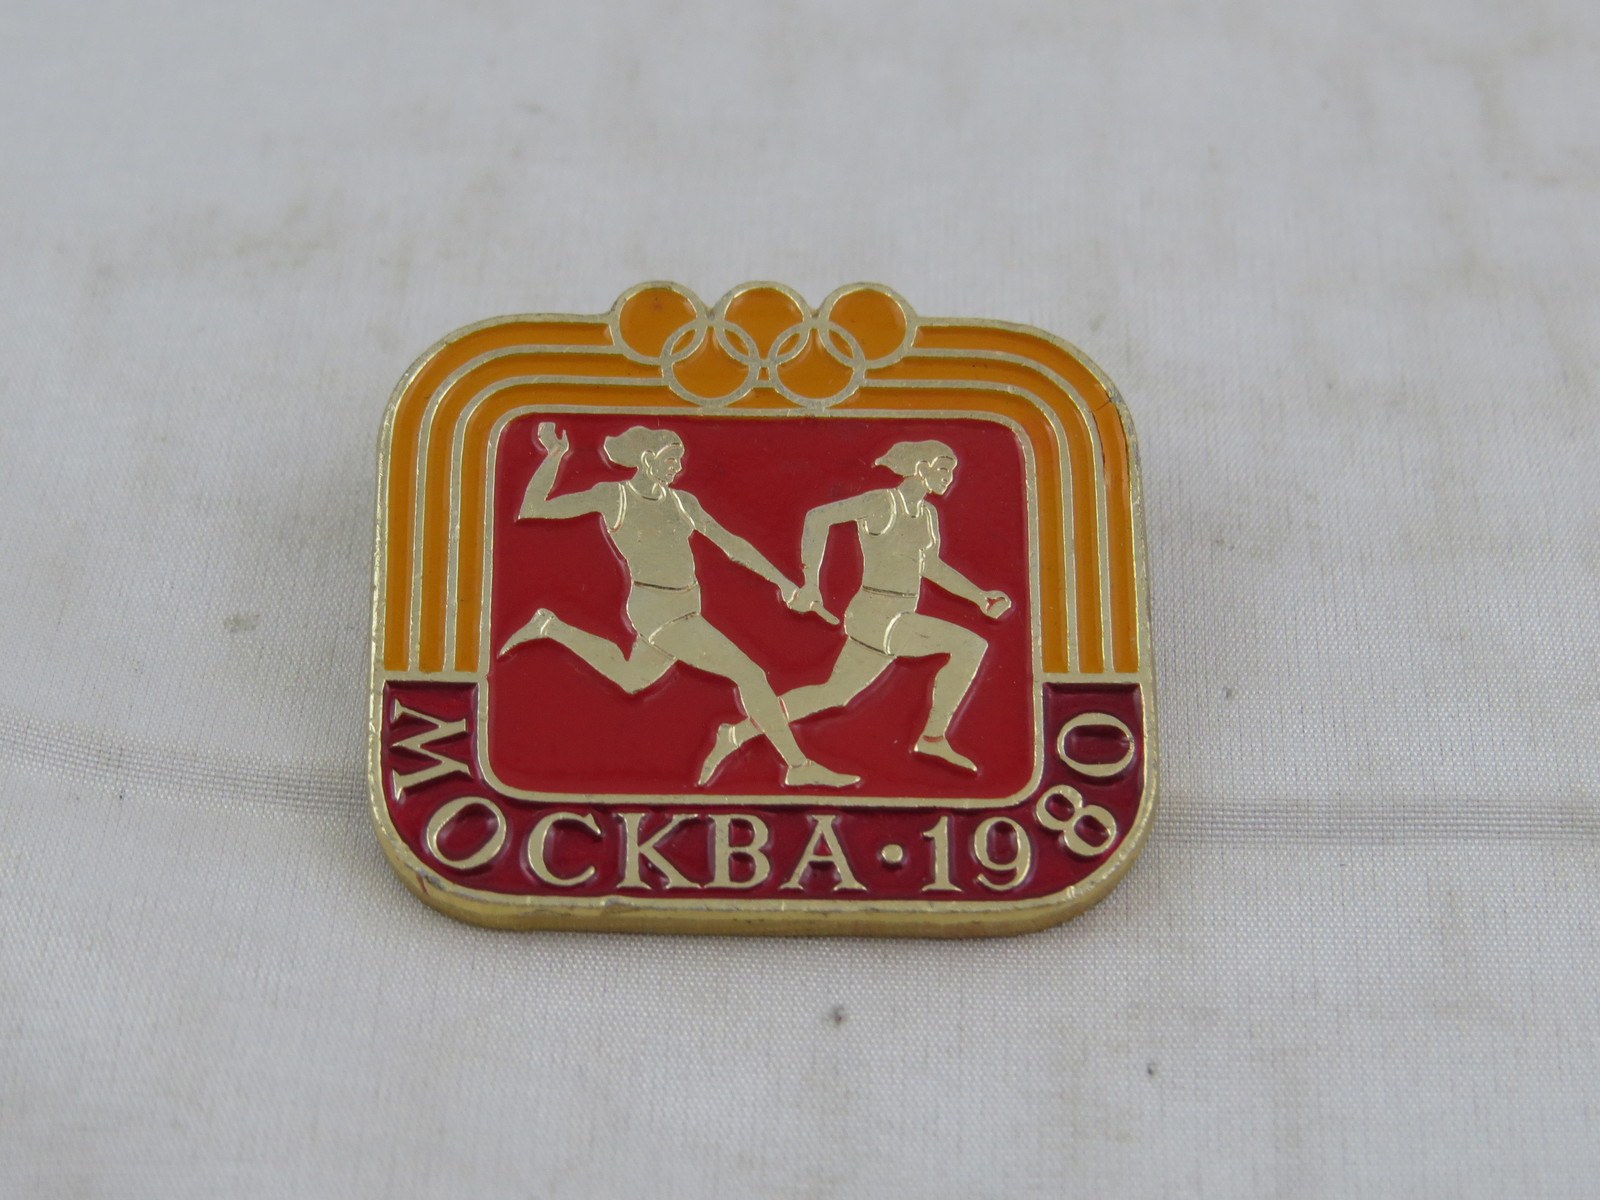 1980 Summer Olympic Games Pin - Track and Field  Event - Stamped Pin image 2